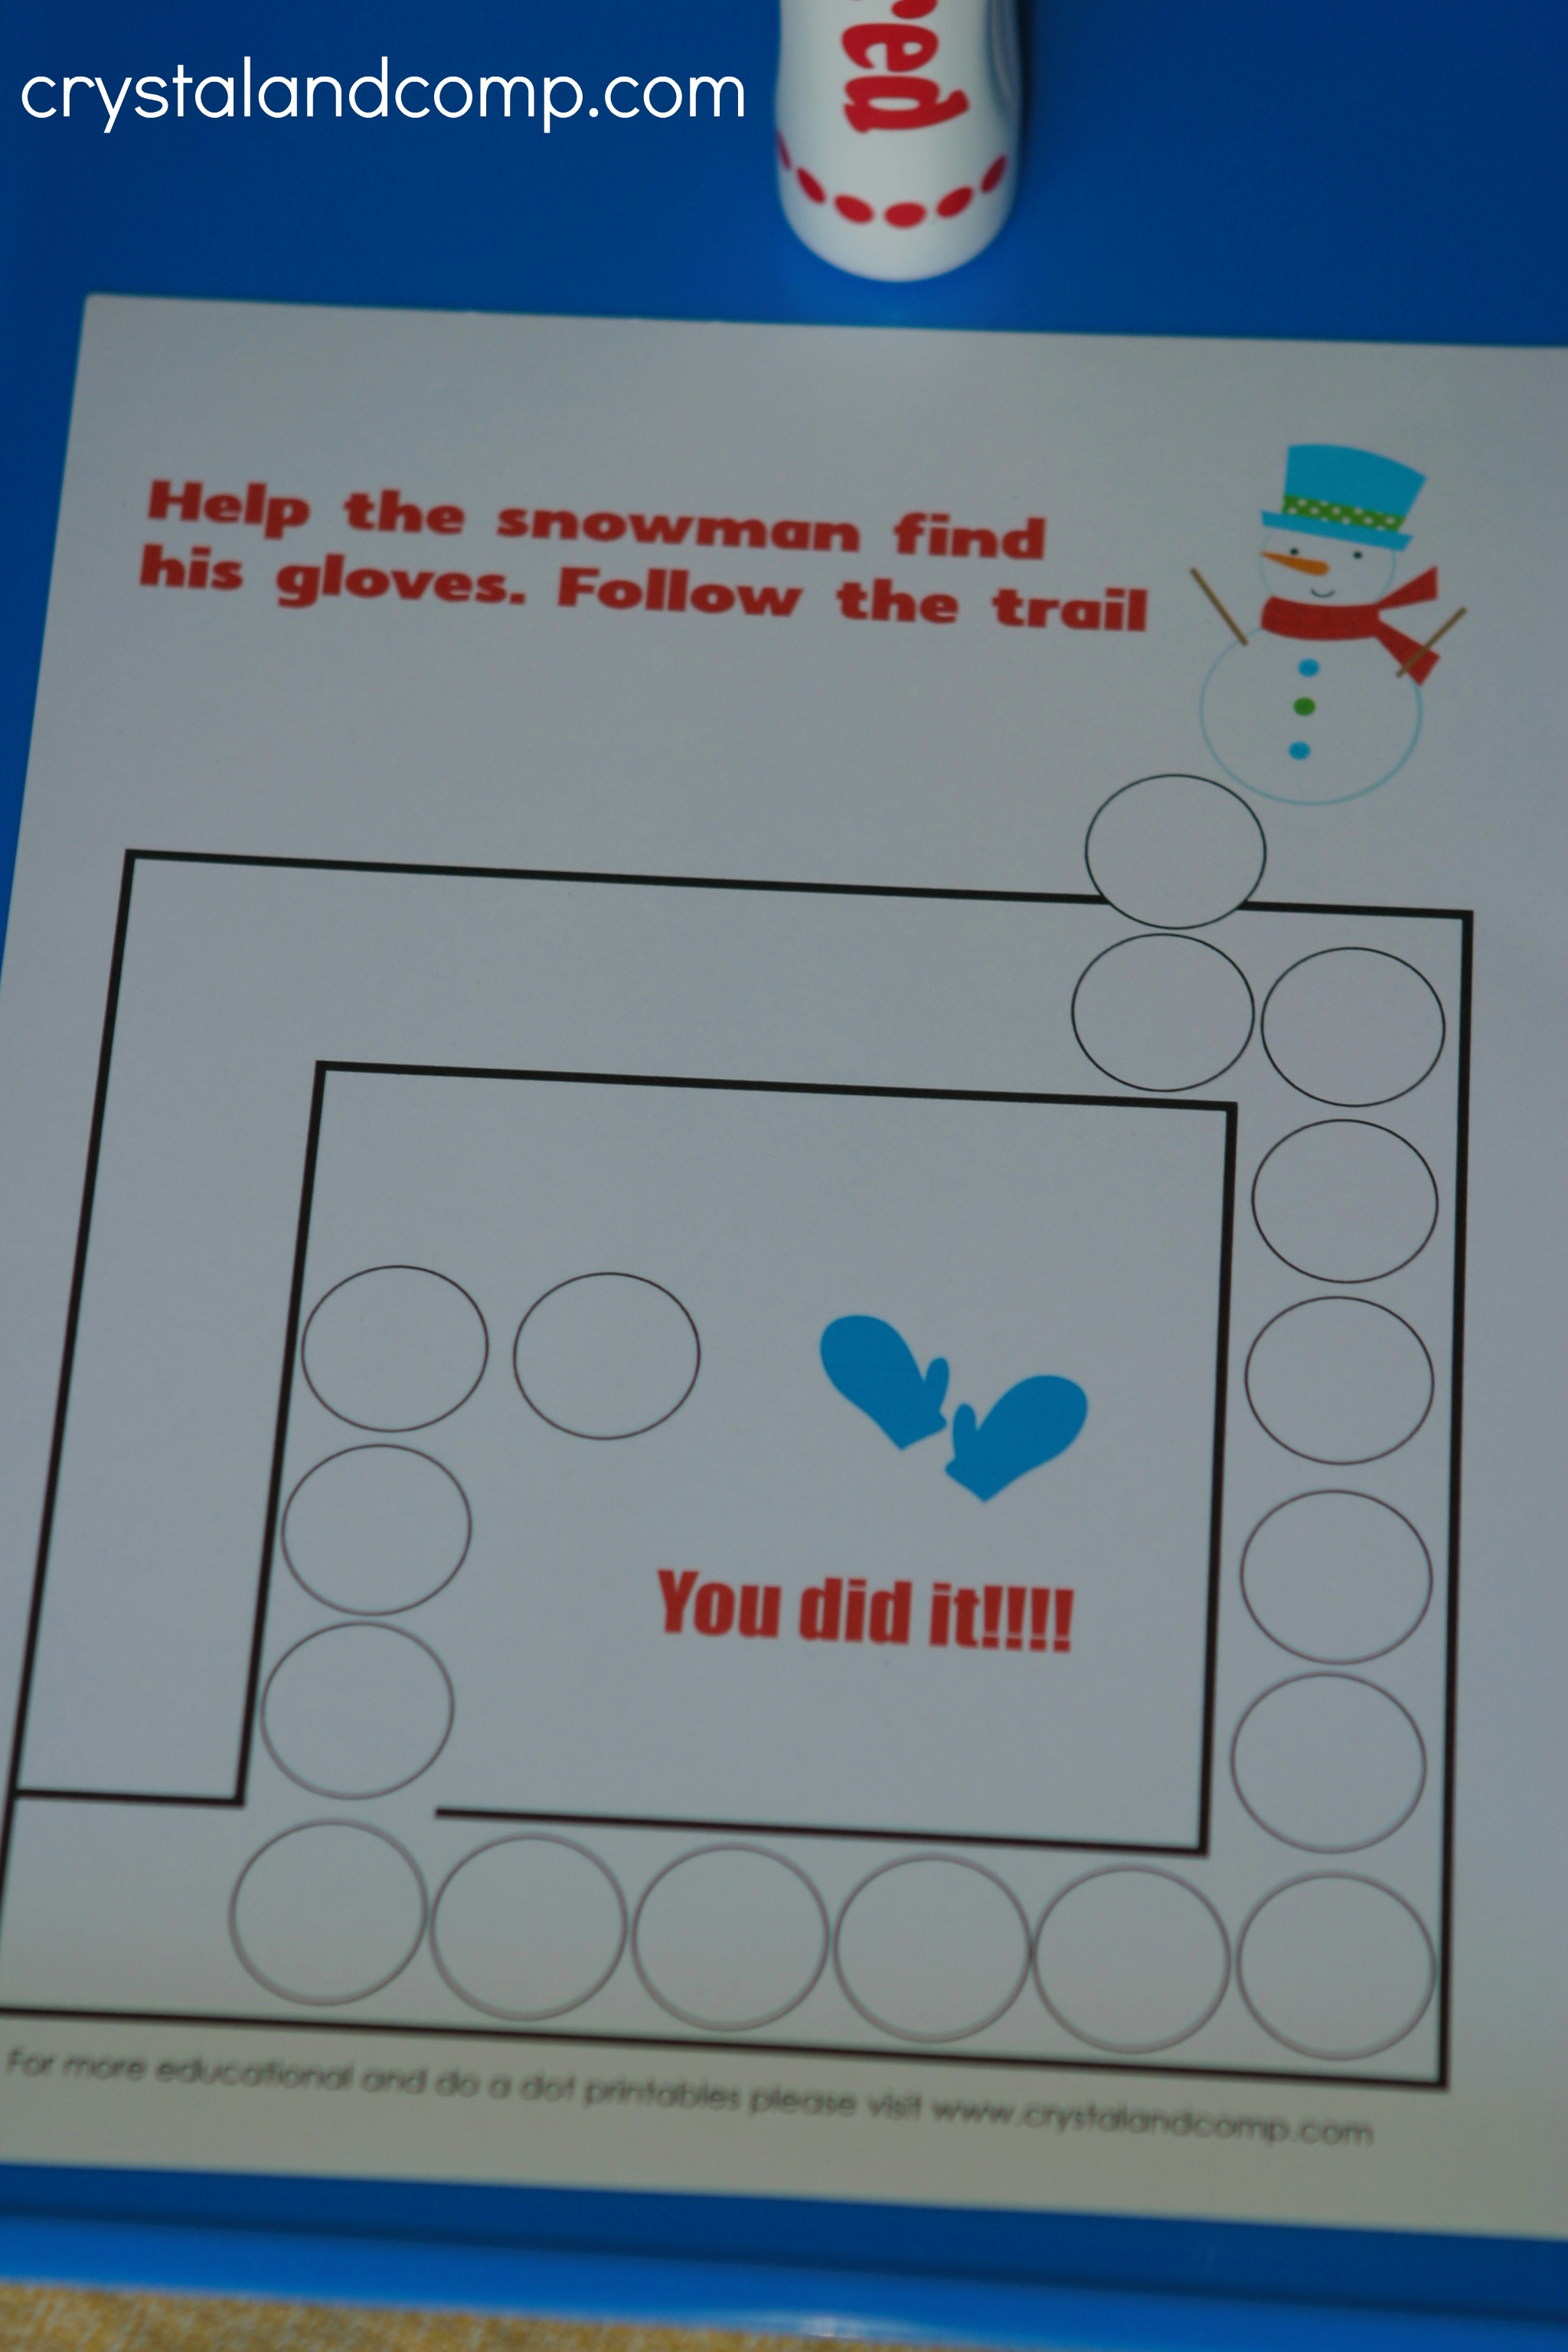 Snowman Do A Dot Printables For Preschoolers | Crystalandcomp | Snowman Worksheet Printables